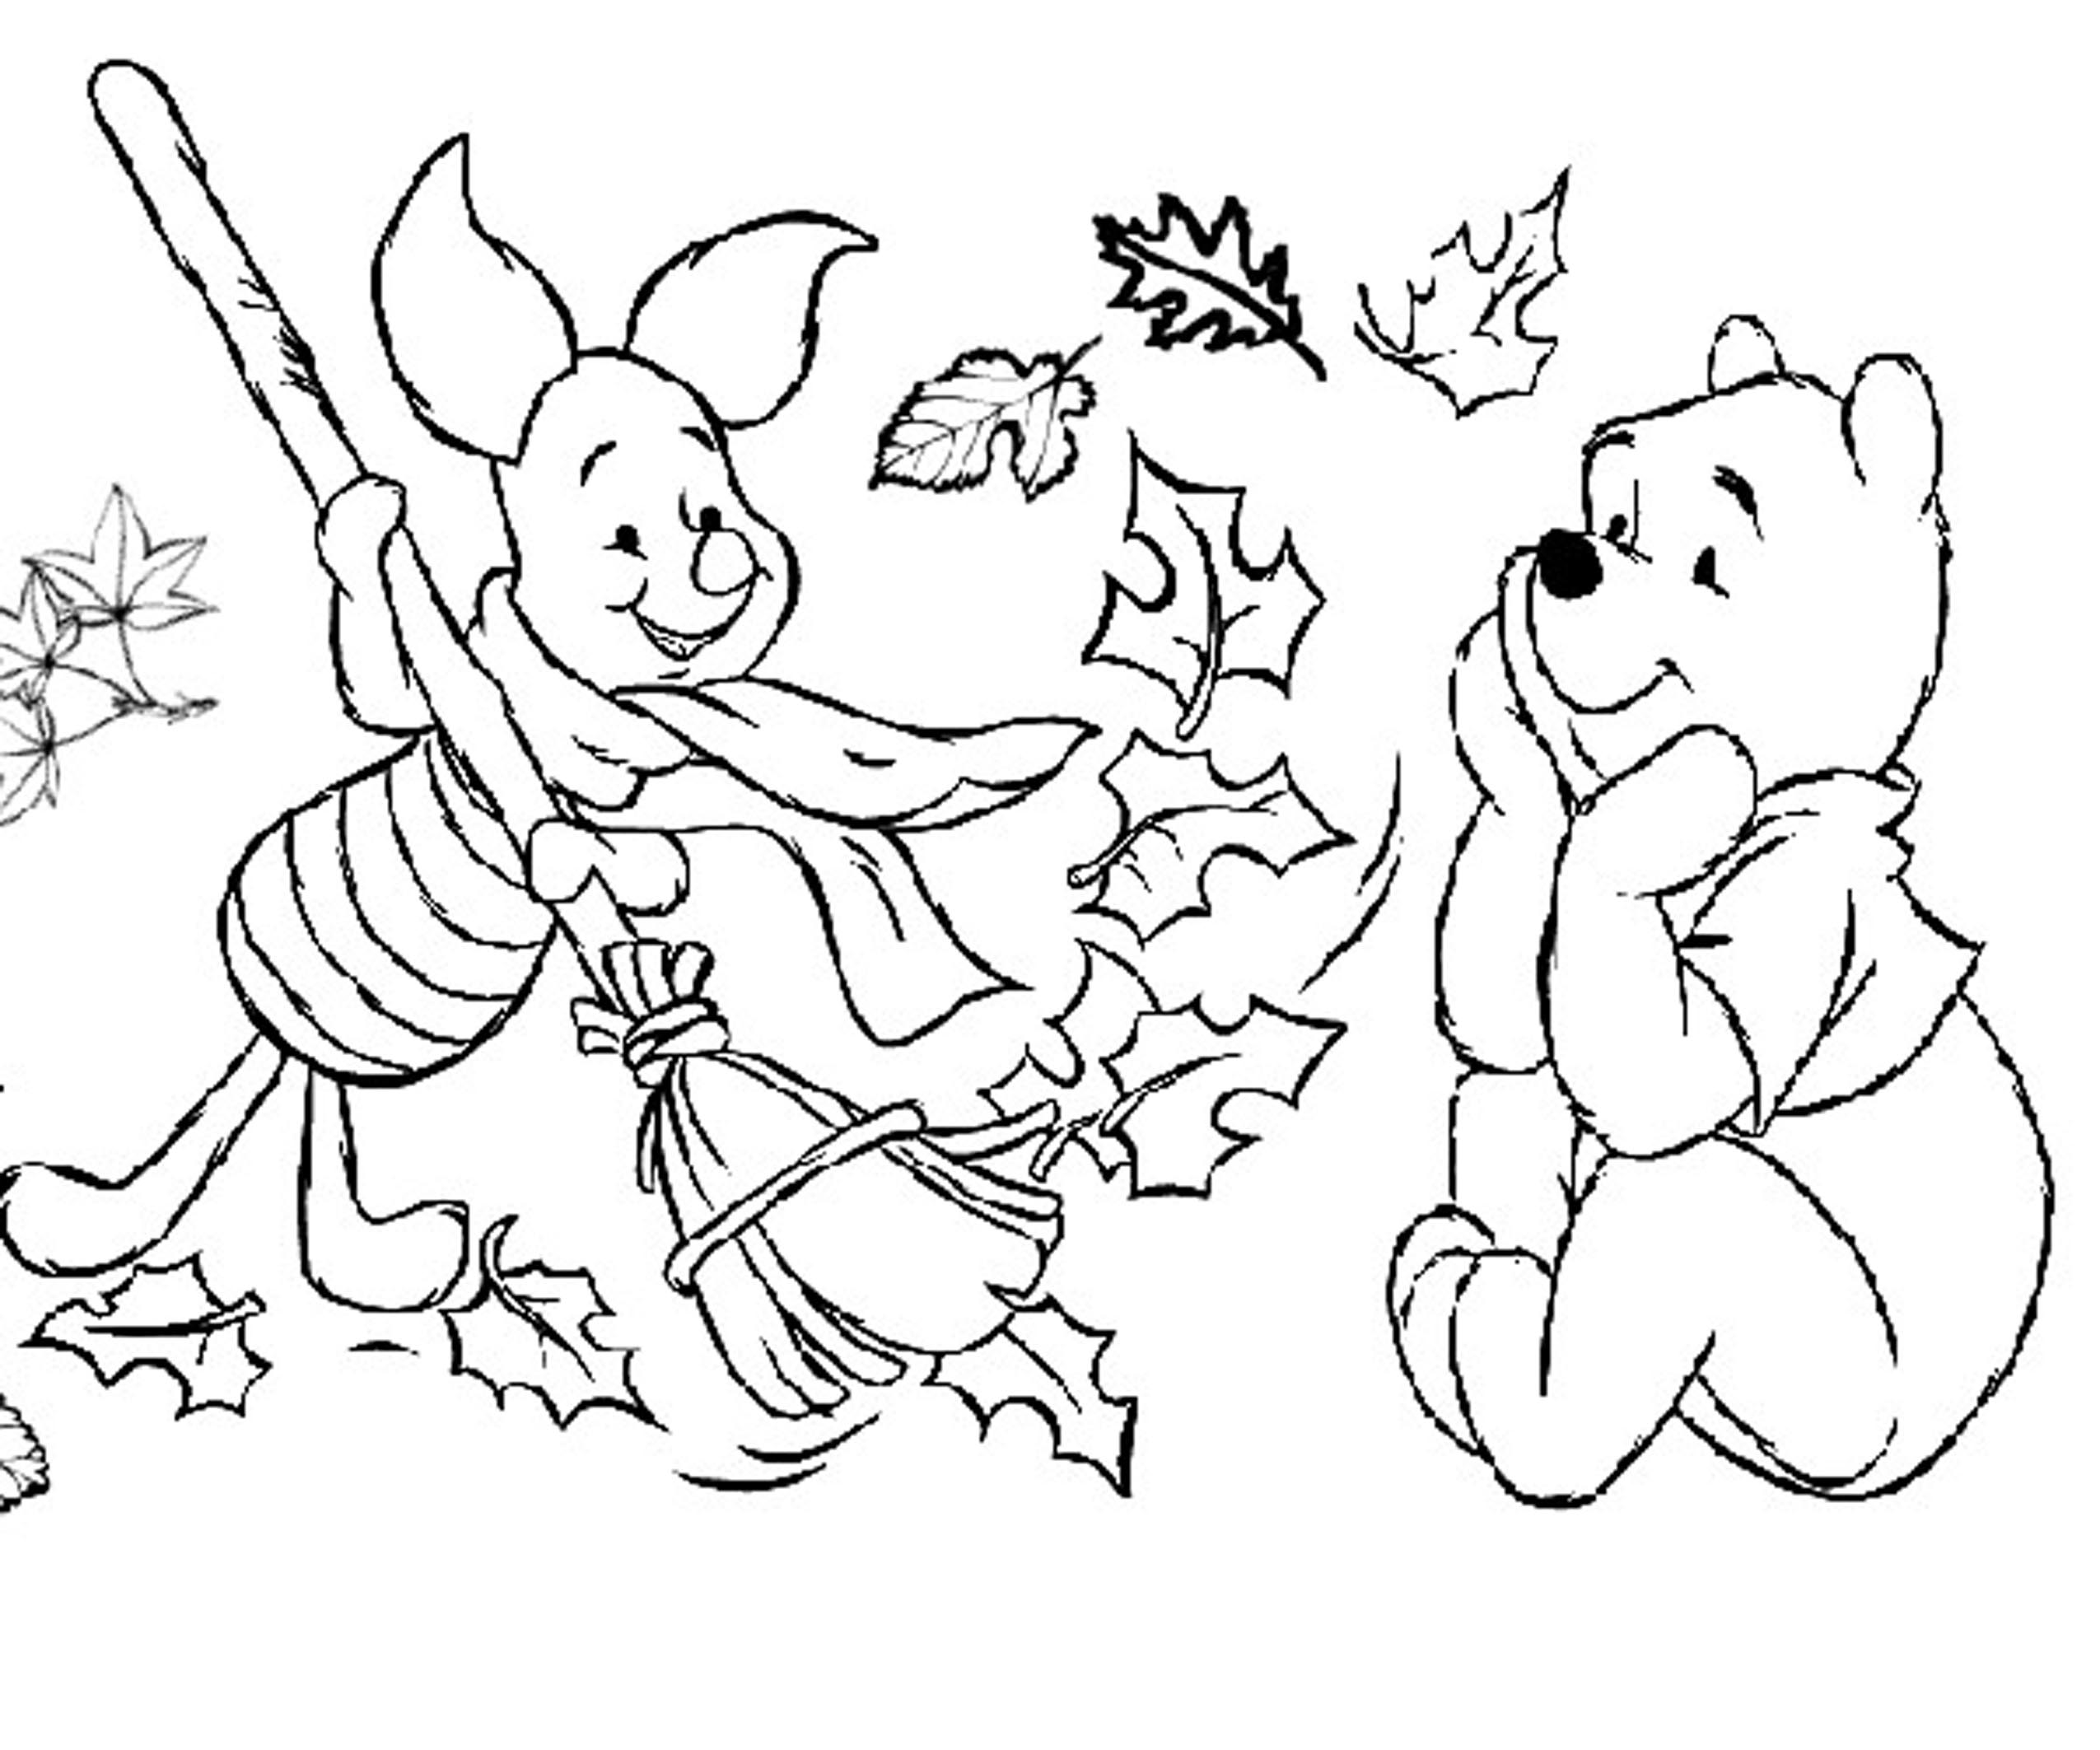 pooh piglet disney fall coloring pages preschoolers - Coloring Pages Images